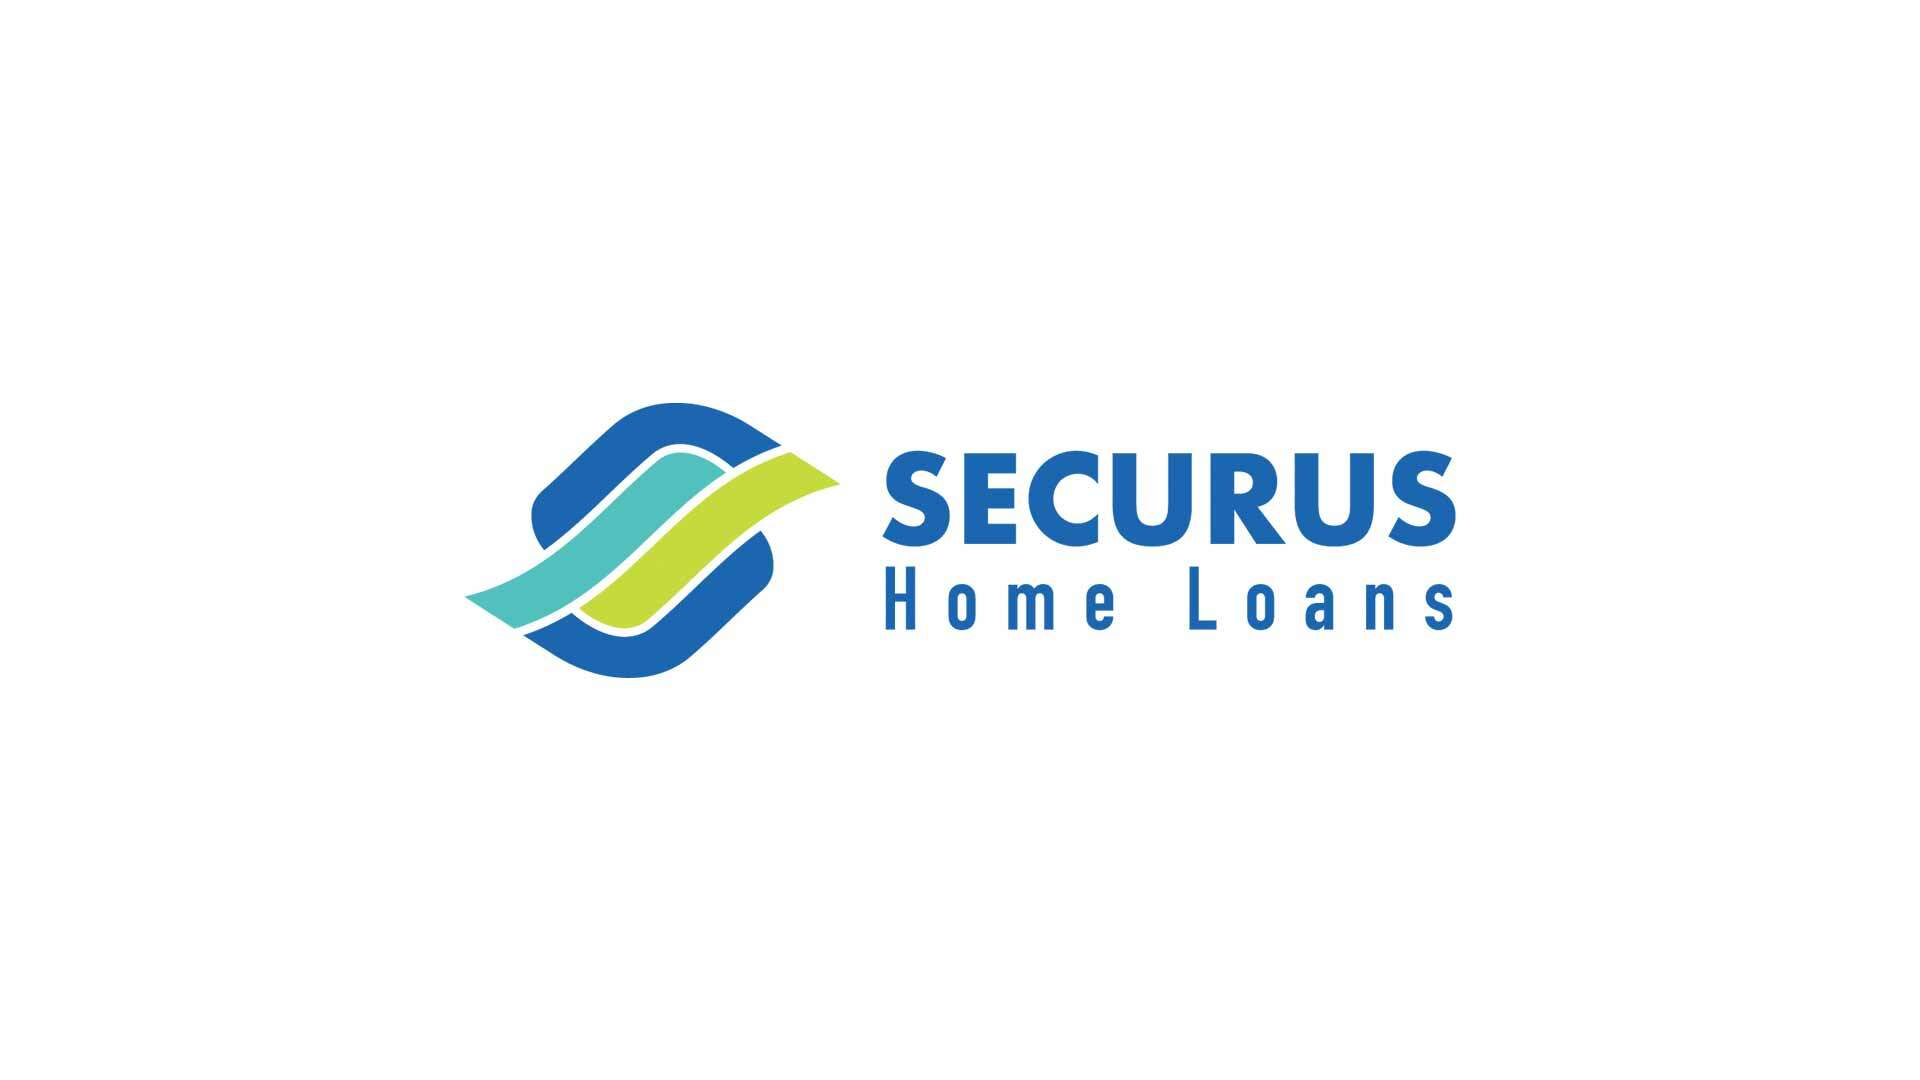 Securus Home Loans Logo Design